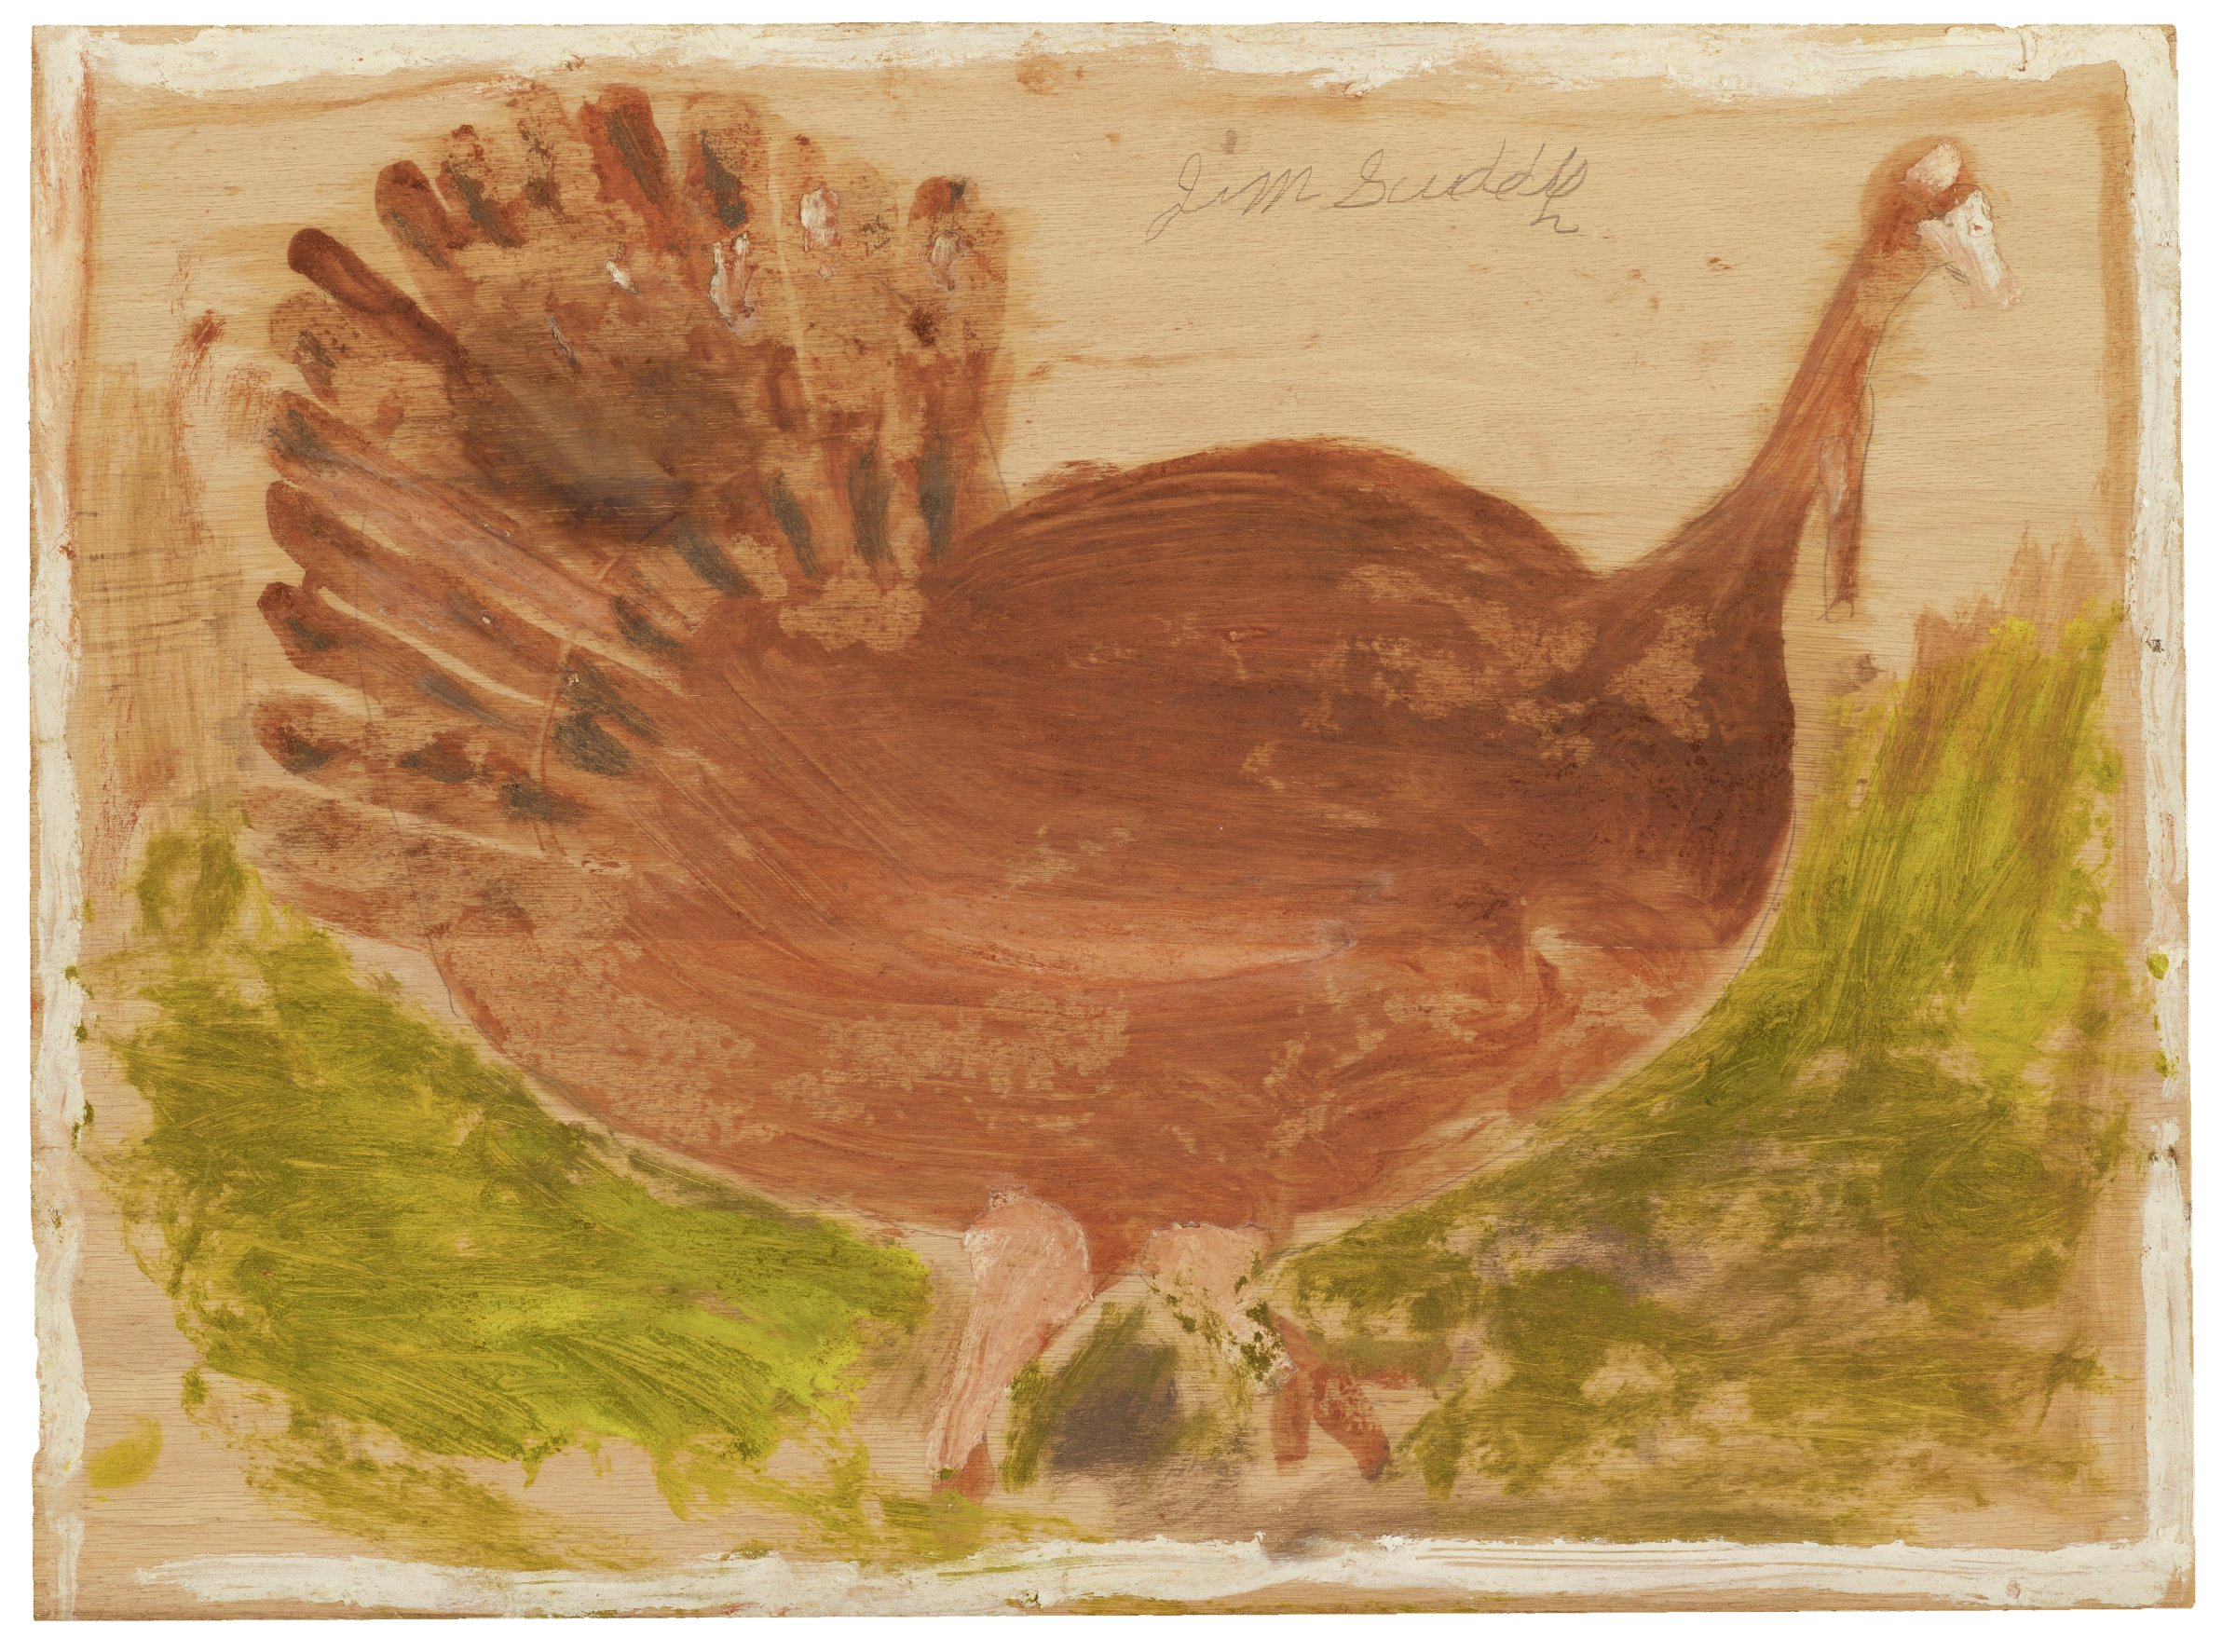 Untitled (Turkey) Date unknown, mid to late 20th century Jimmy Lee Sudduth American (1910 – 2007) paint and mud on wood board Collection of the Art Fund, Inc. at the Birmingham Museum of Art; Robert Cargo Folk Art Collection; Gift of Caroline Cargo, AFI.512.2013